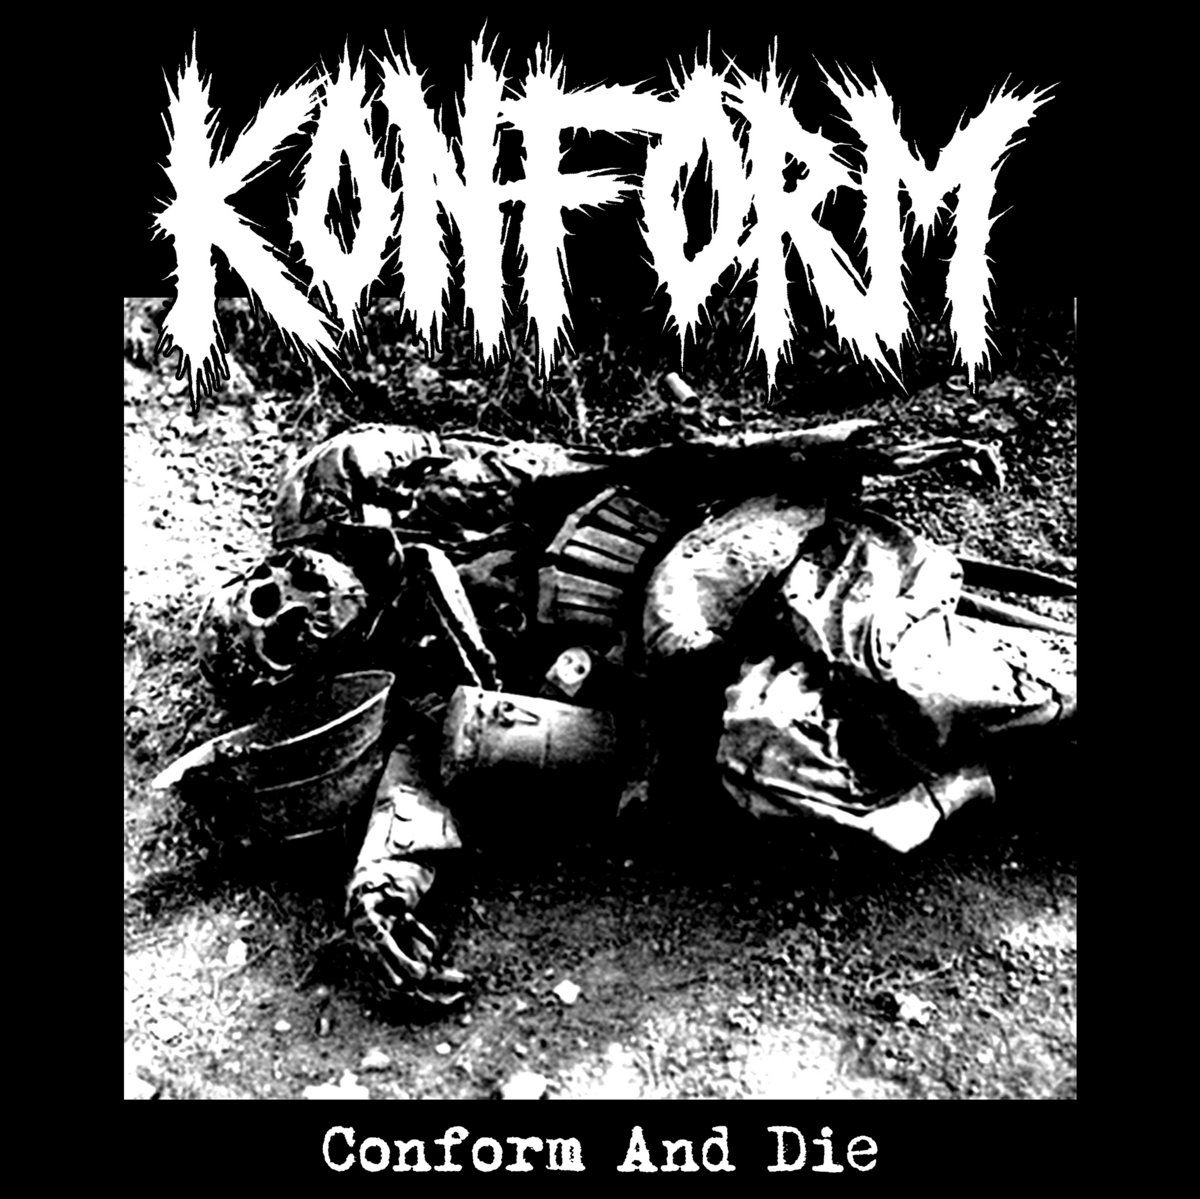 CONFORM AND DIE | KONFORM